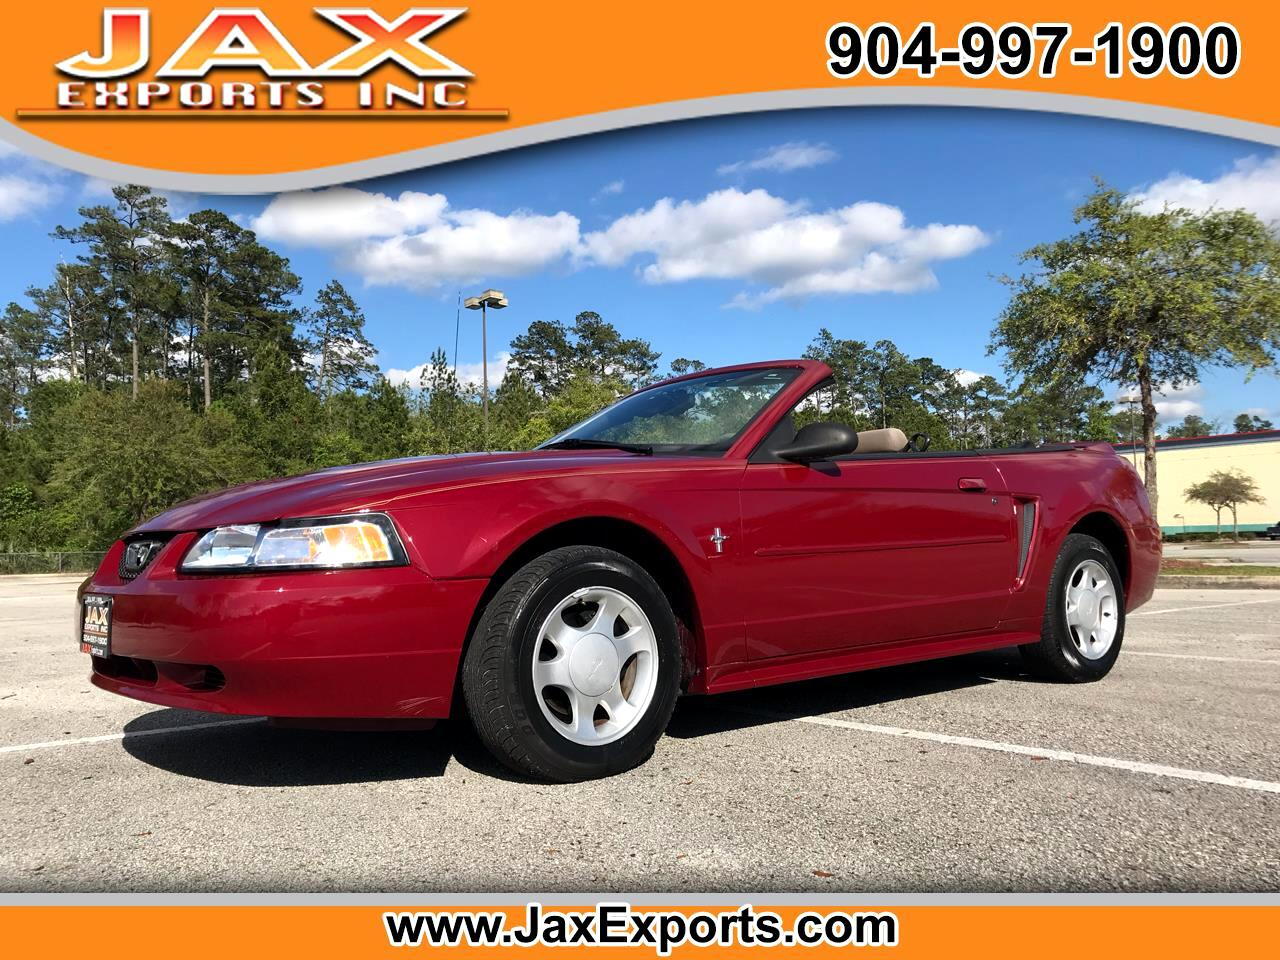 2000 Ford Mustang 2dr Convertible